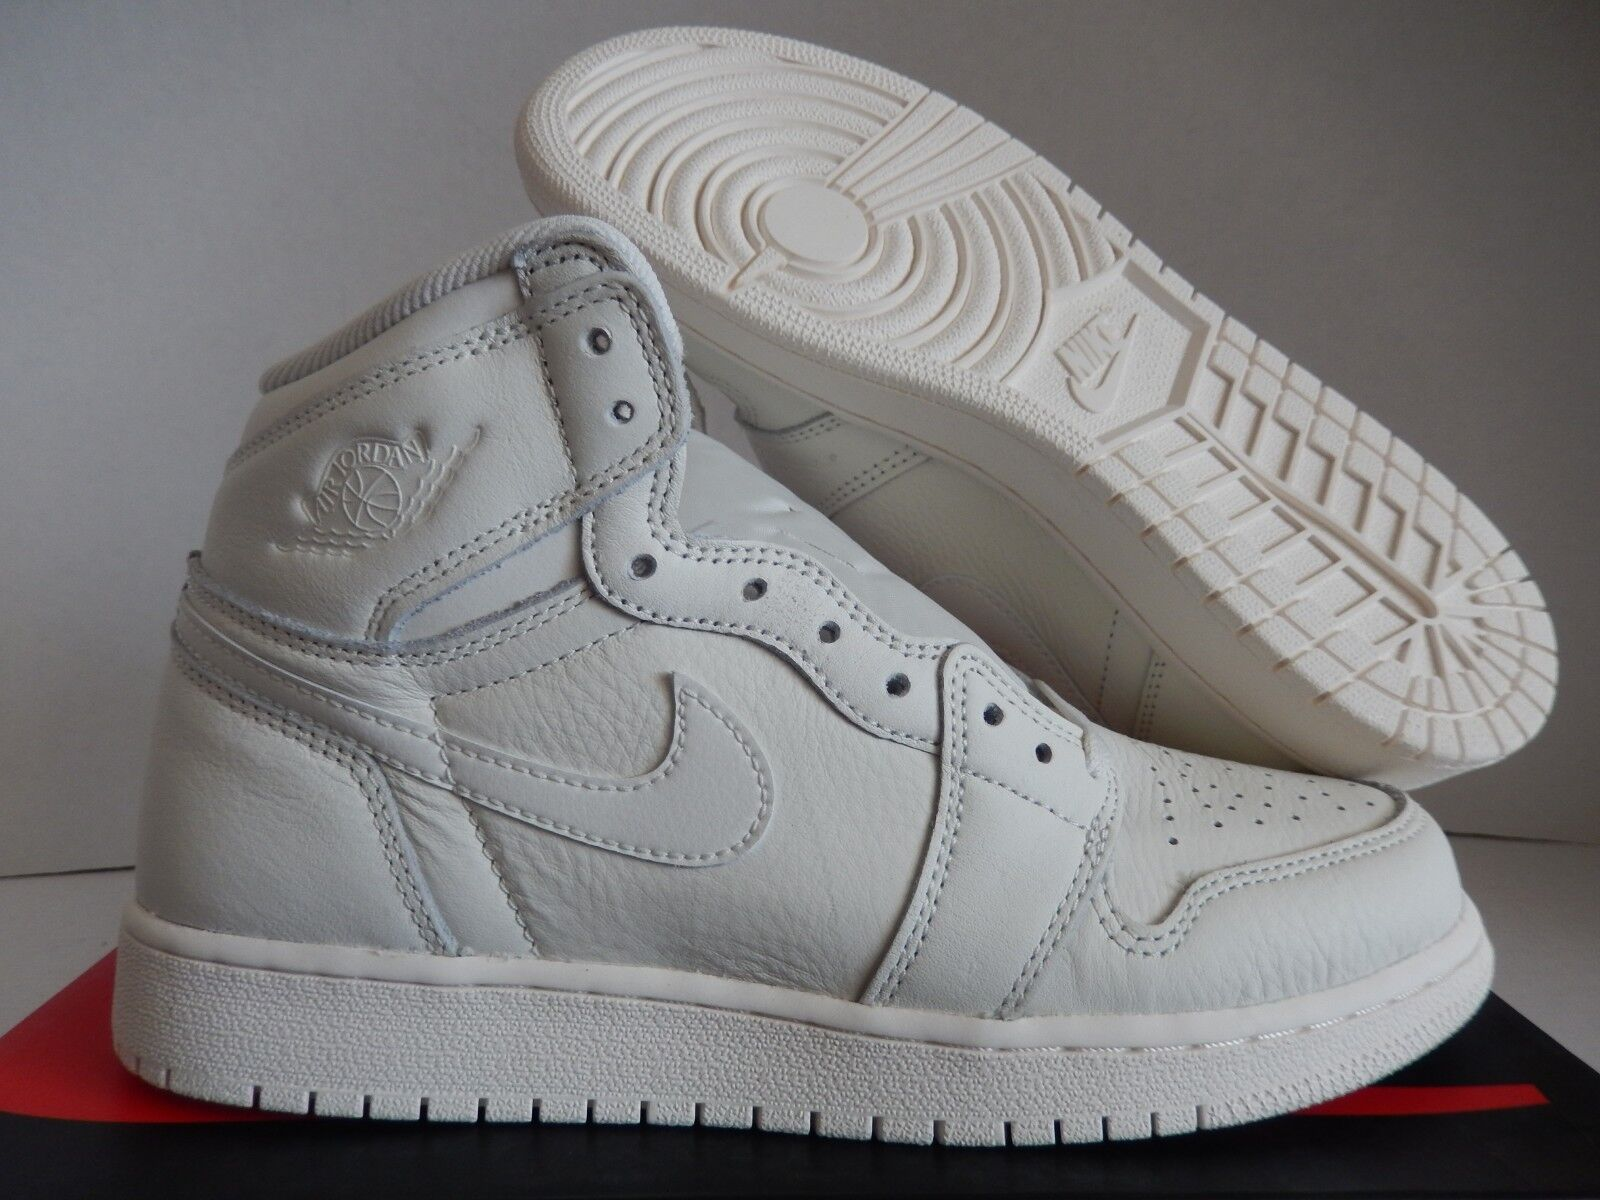 NIKE AIR JORDAN 1 RETRO HIGH OG BG SAIL-RED SZ 6.5Y-WOMENS SZ 8 [575441-114]